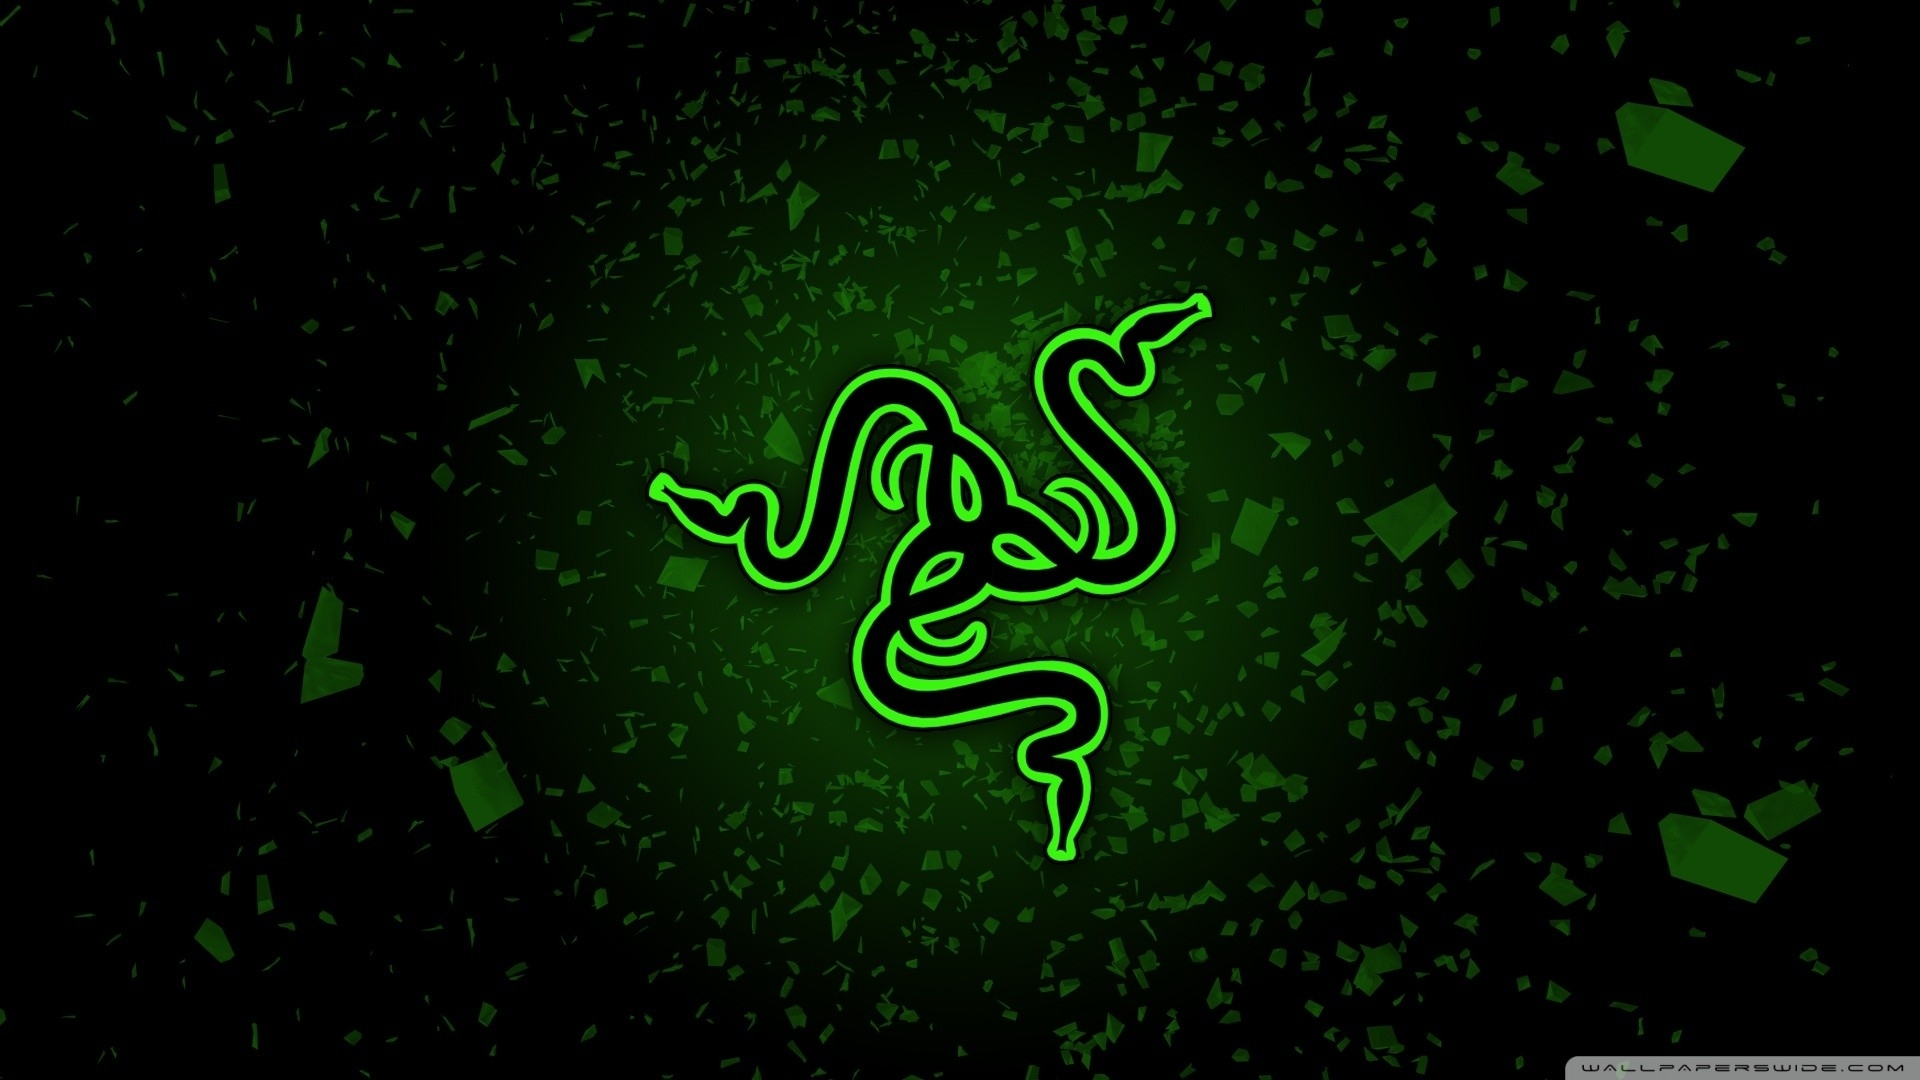 razer wallpaper 1920x1080 hd (92+ images)